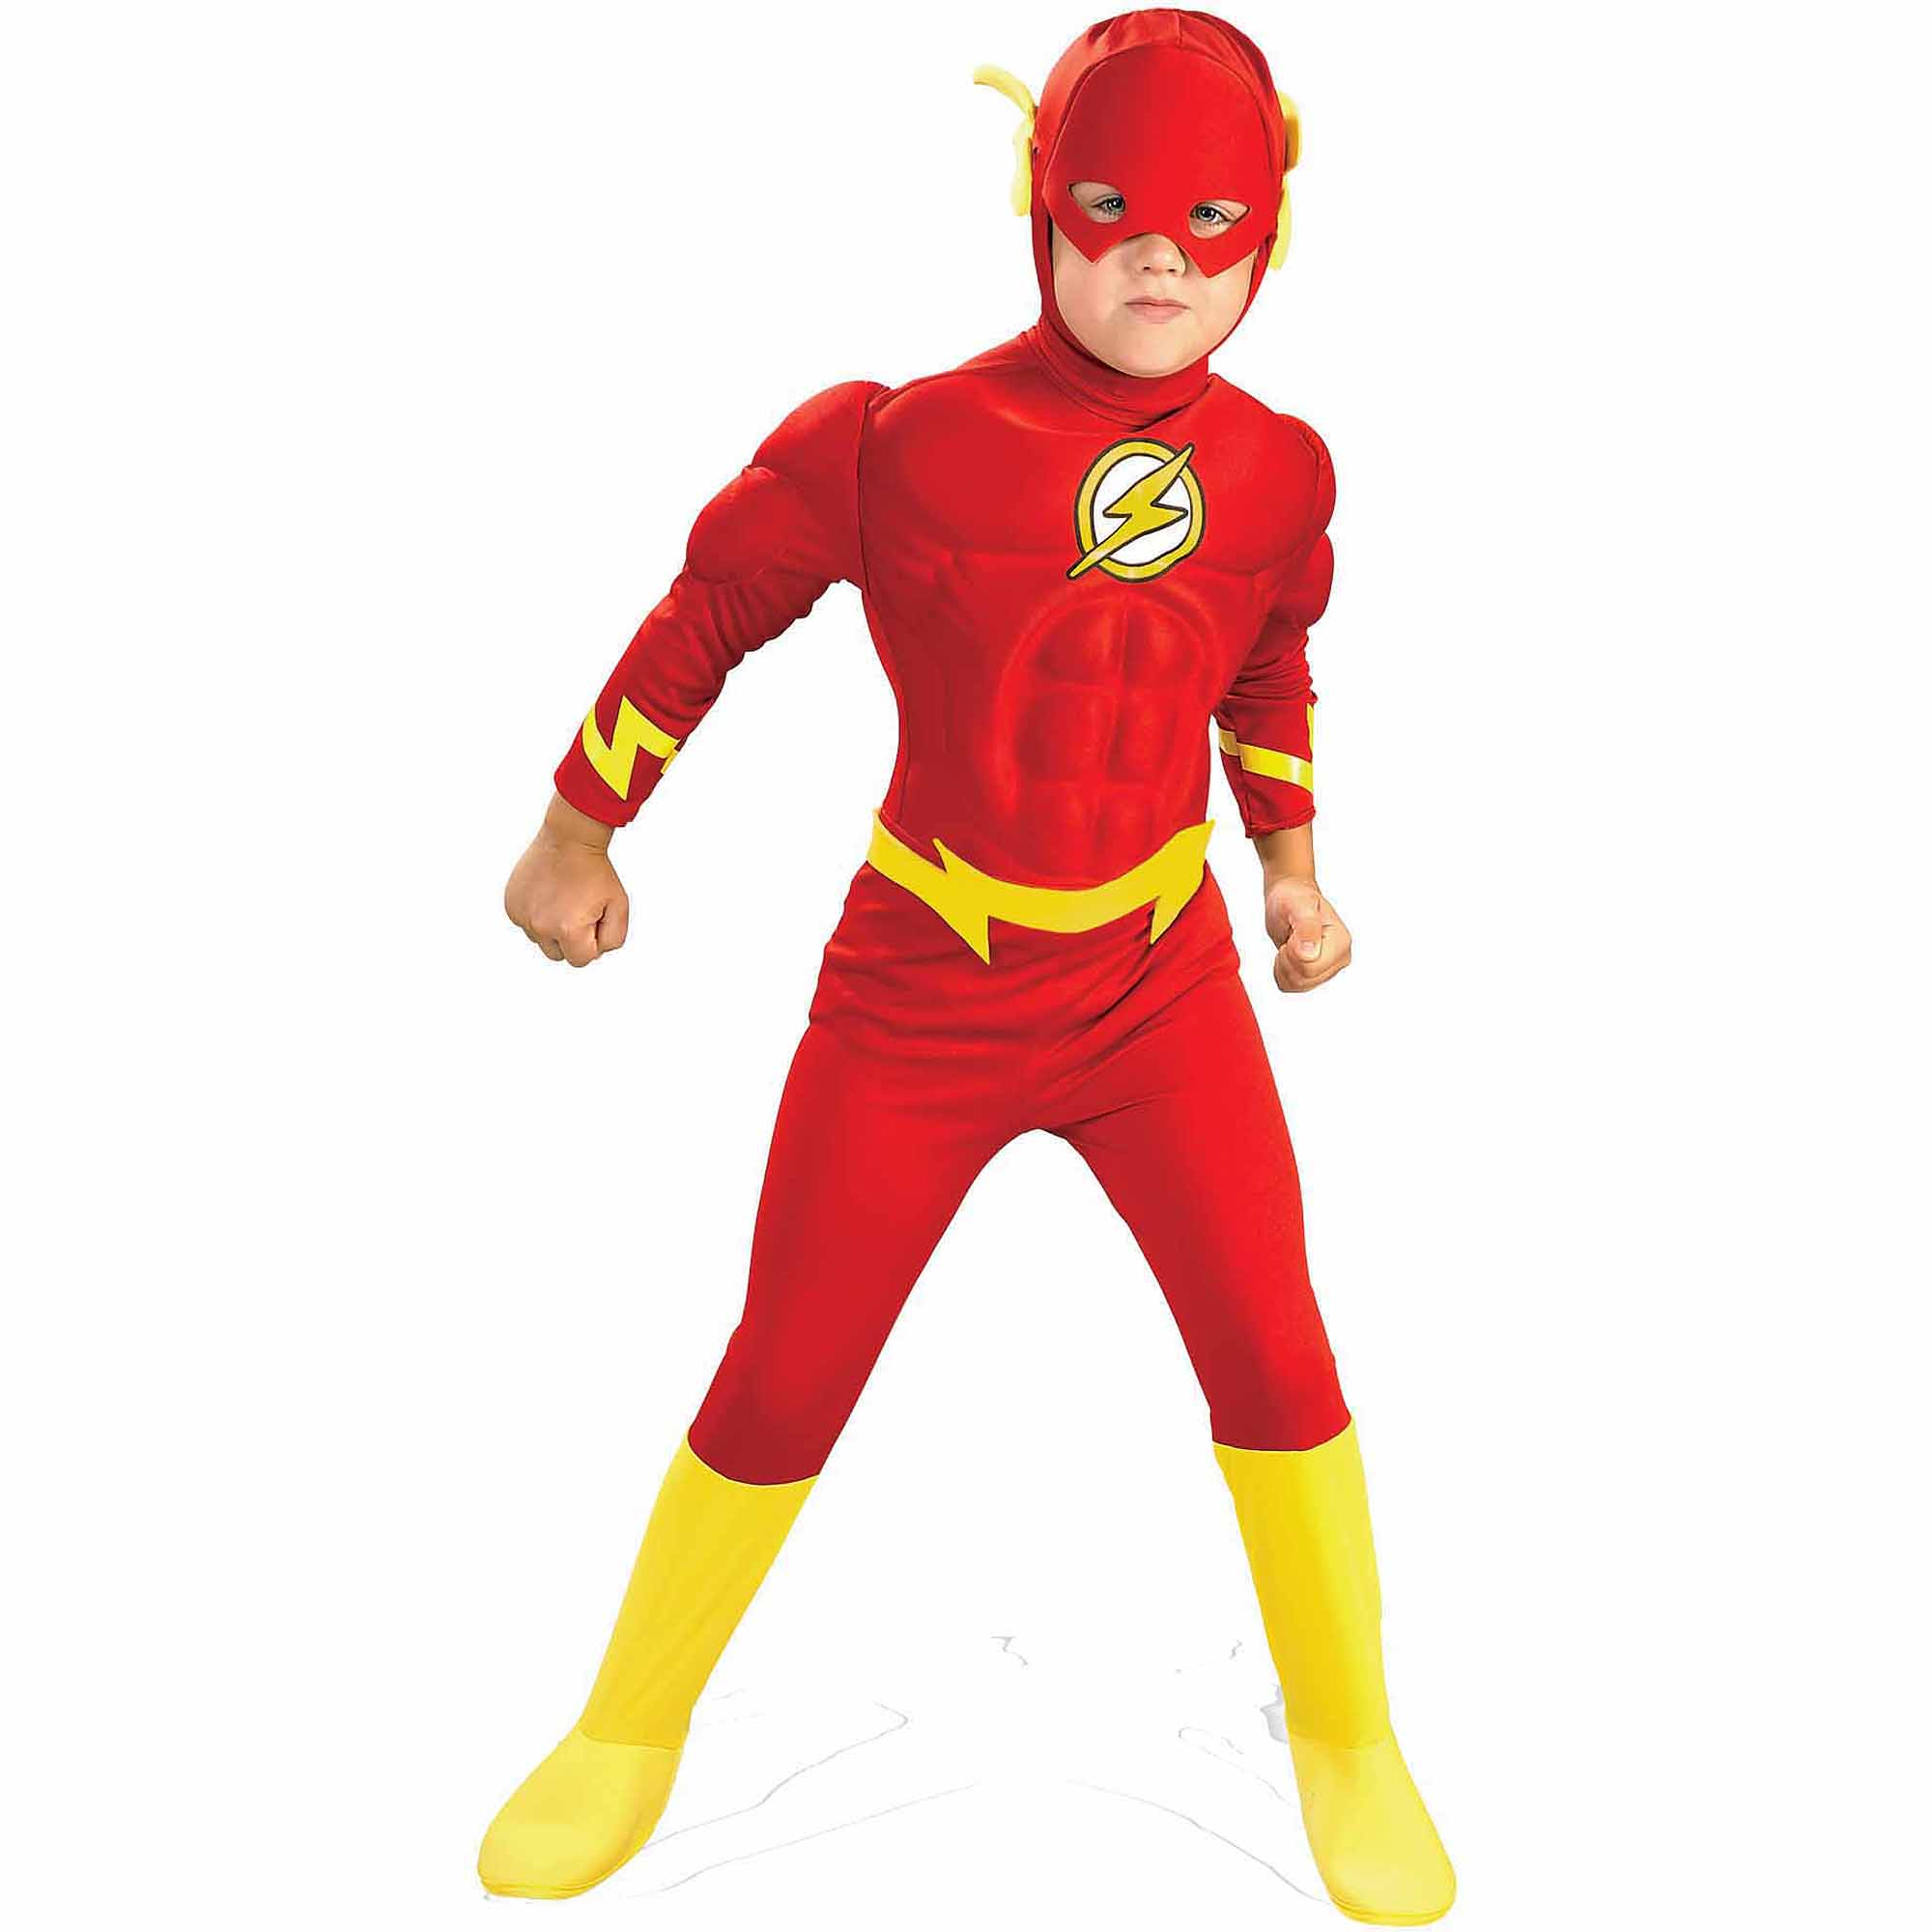 sc 1 st  Walmart & Flash Deluxe Muscle Child Halloween Costume - Walmart.com